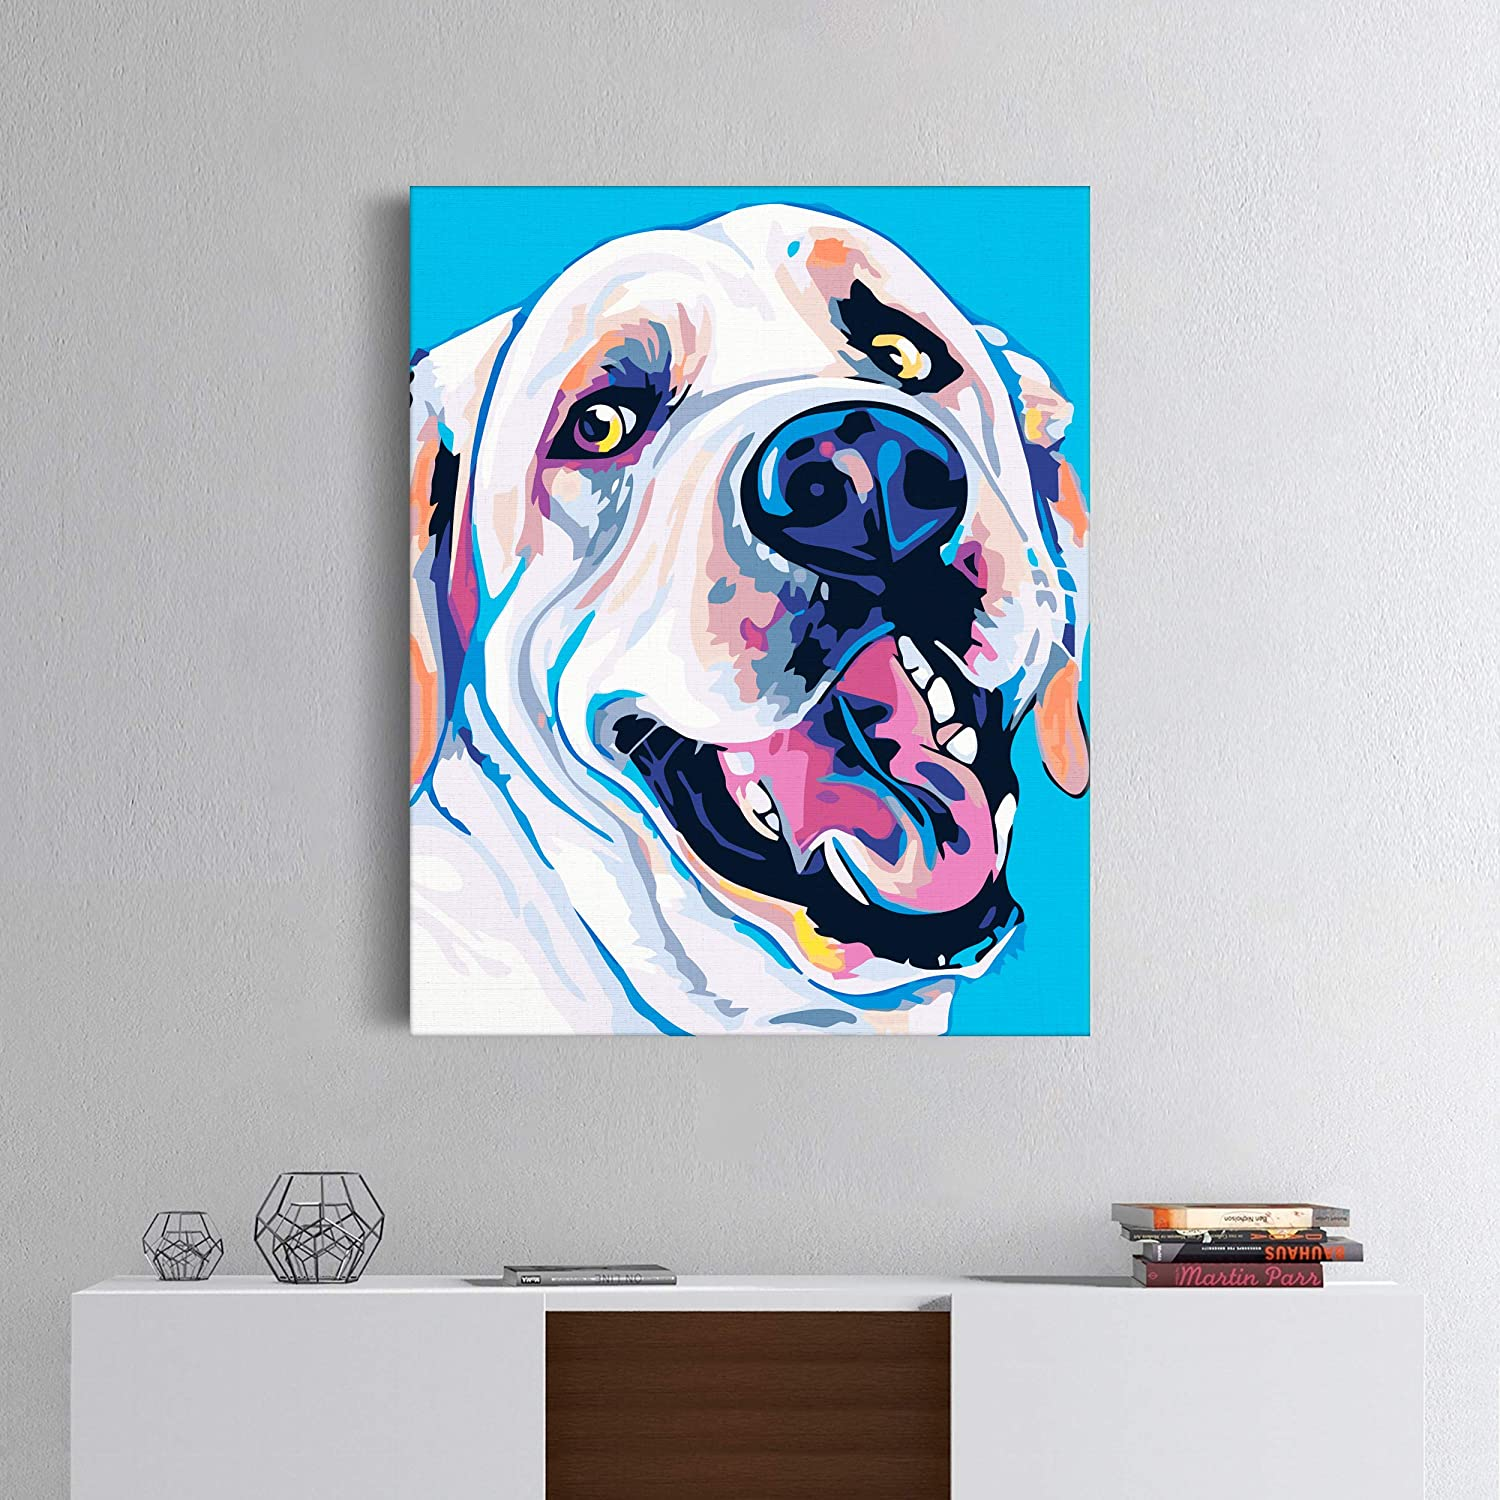 Cute Dog Canvas Painting Art Design Picture DIY Canvas Animal Print Painting Number Kit Acrylic Animals Painting Home Decor High-Quality Picture